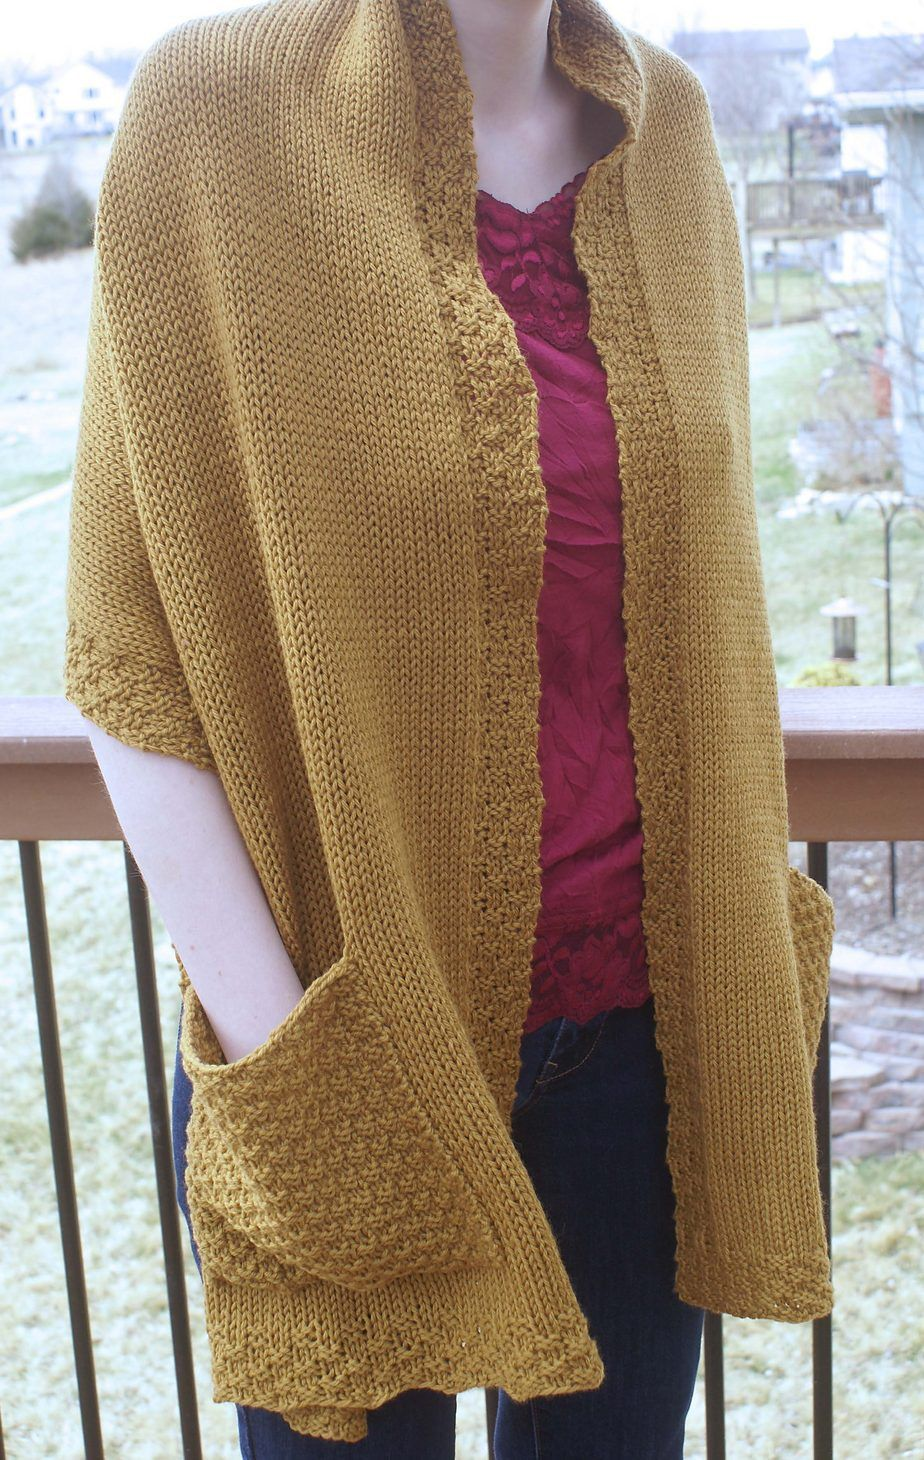 Pocket wrap knitting patterns stockinette knit patterns and shawl knitting pattern for readers wrap stockinette shawl with large textured pockets by lisa carnahan in bankloansurffo Image collections